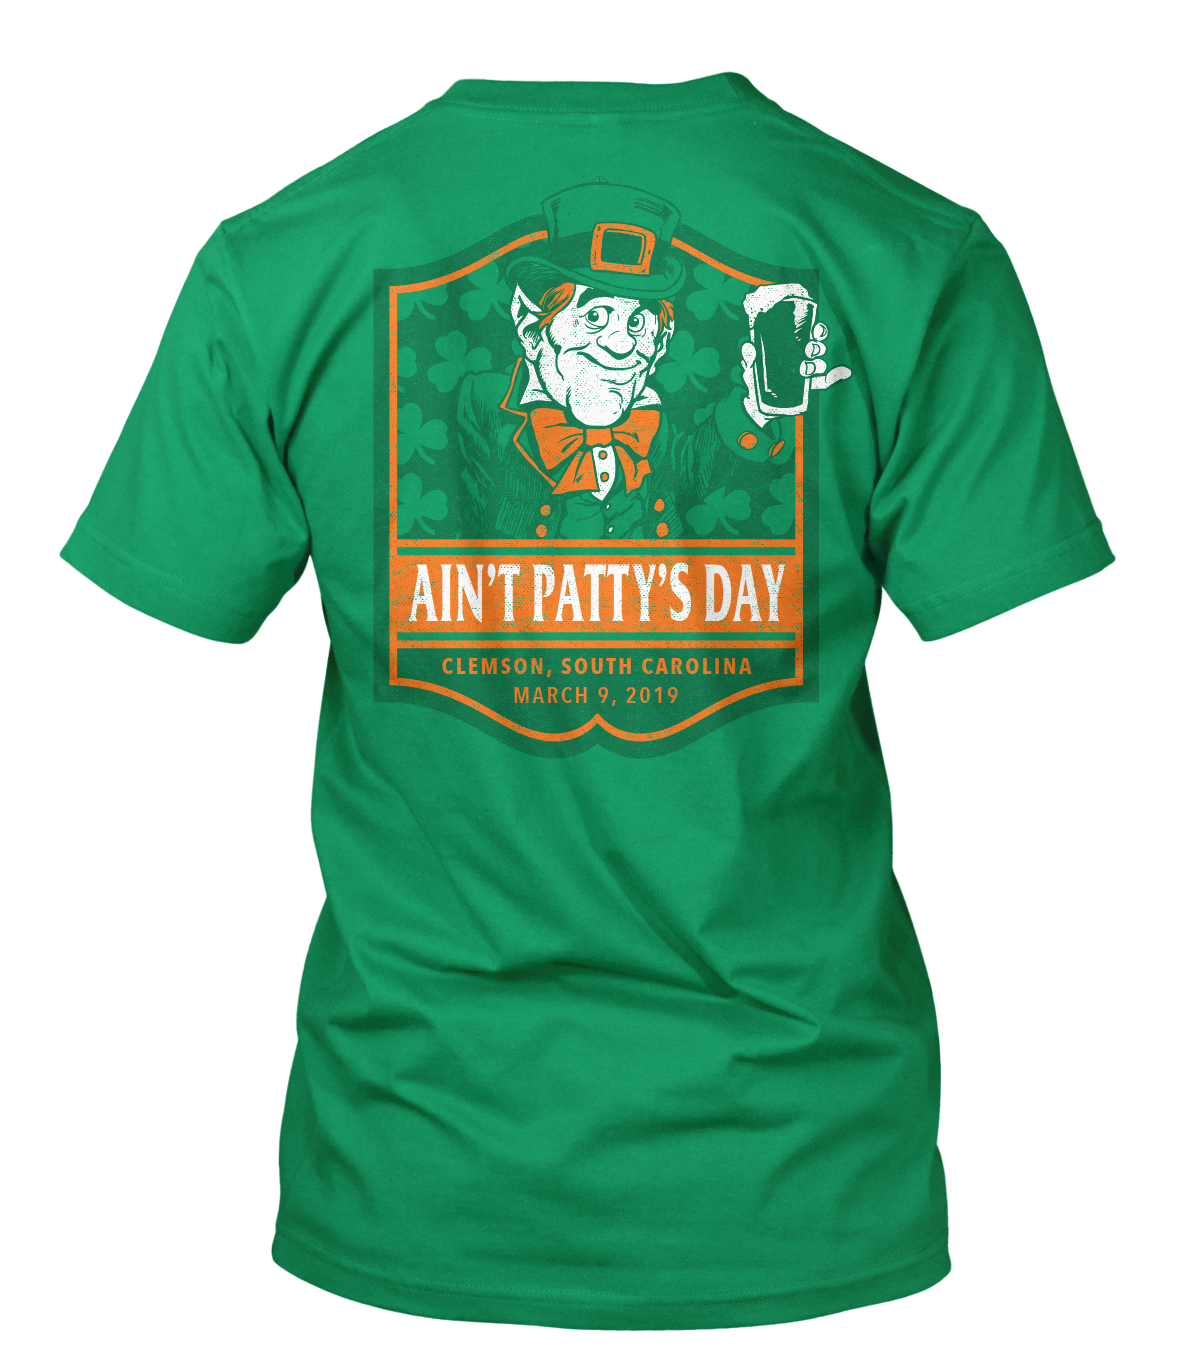 Ain't Patty's Day 2019 Shirt